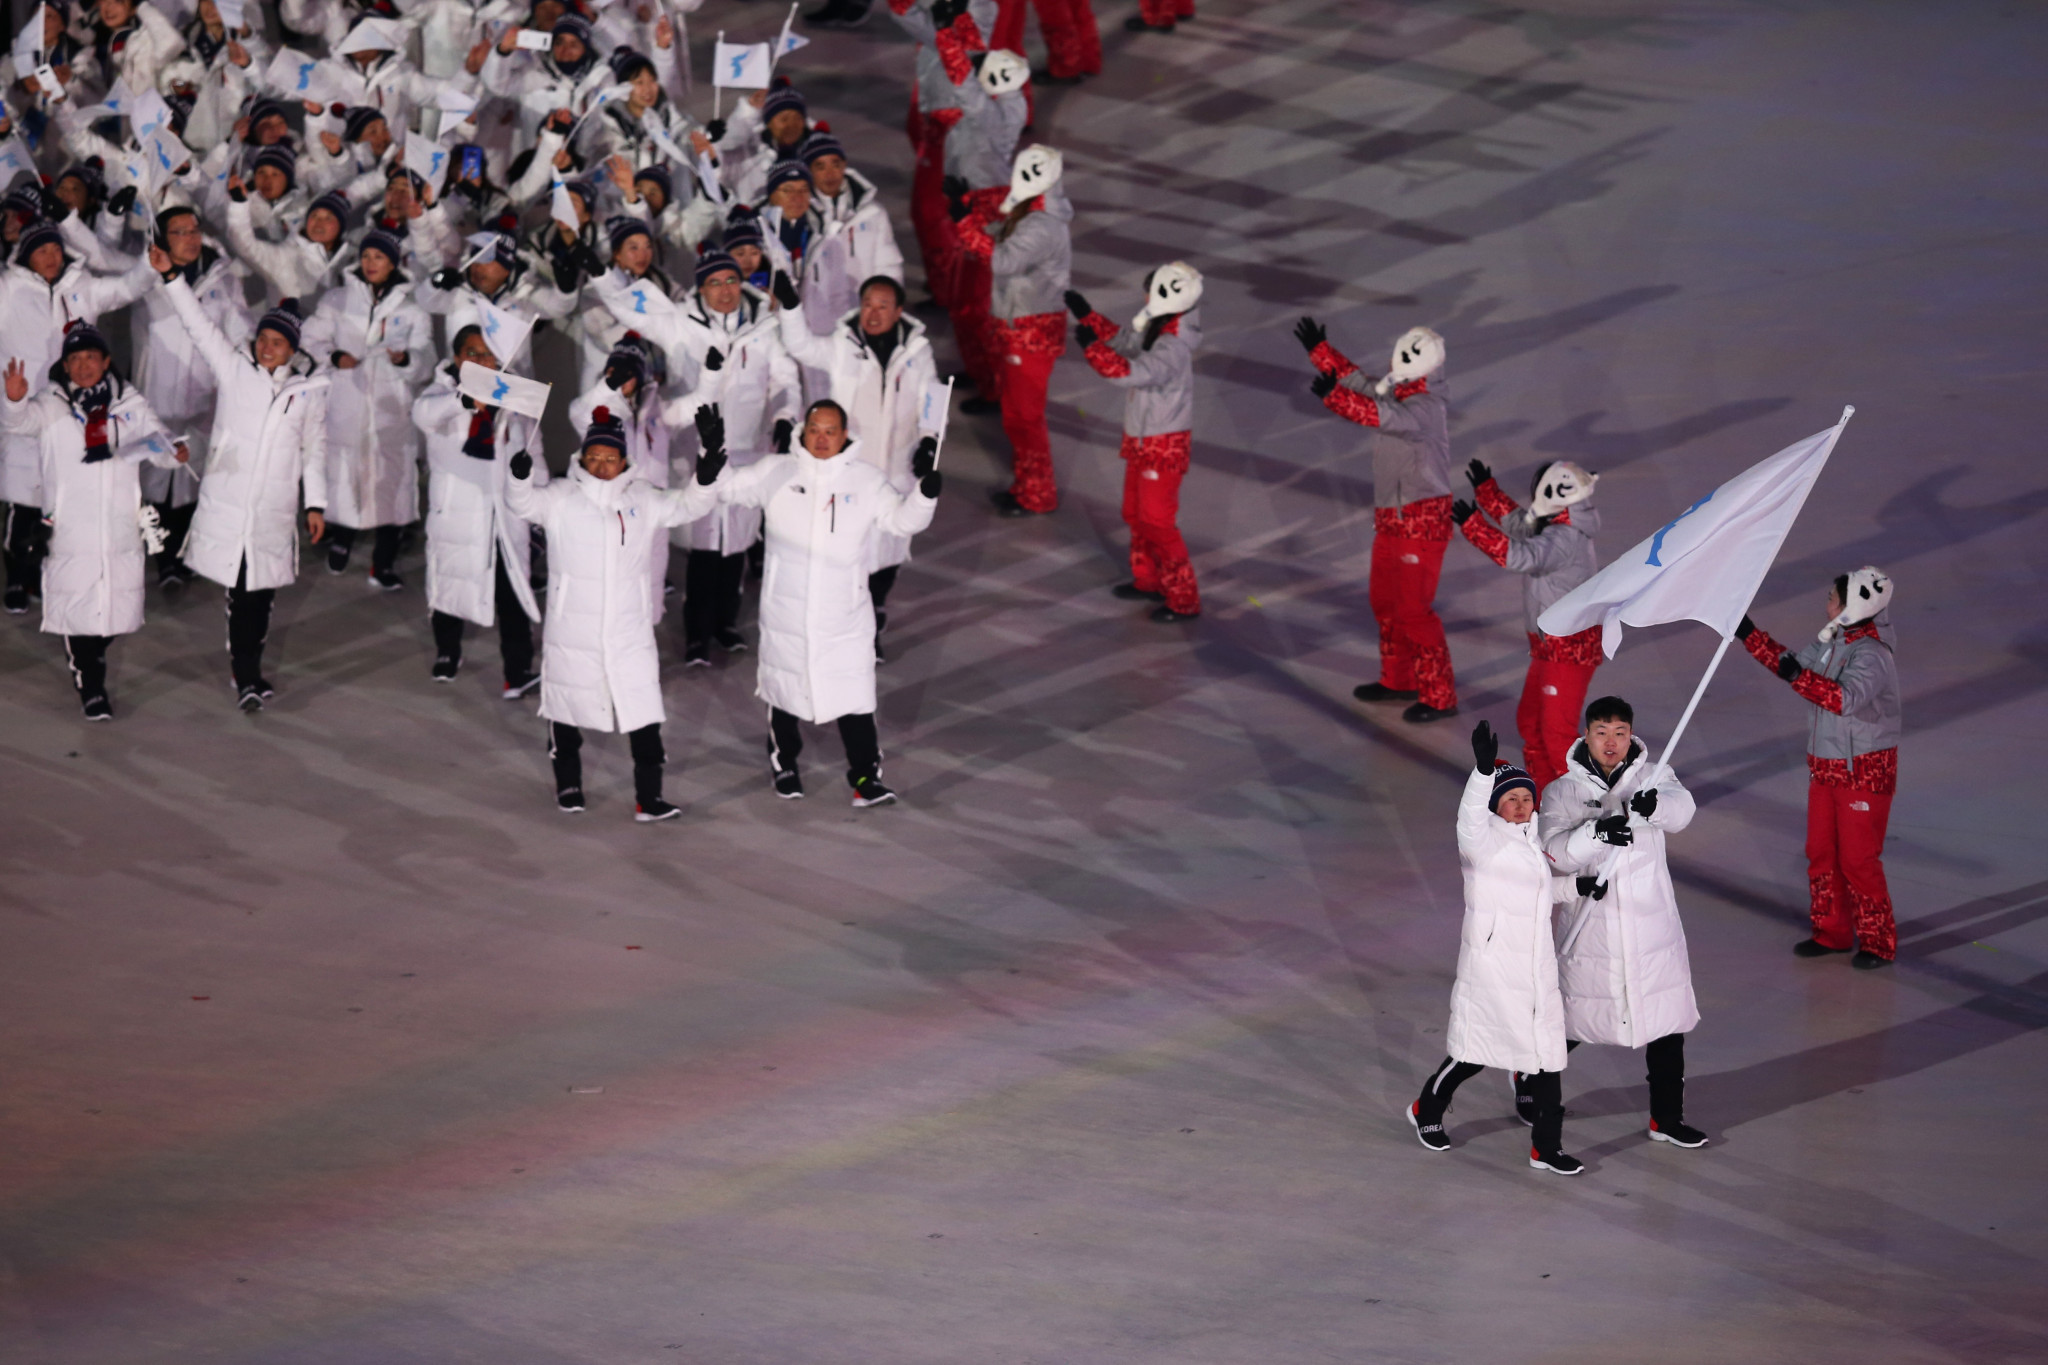 The two Koreas marched in together at the Opening Ceremony of the Pyeongchang Winter Olympics in February ©Getty Images